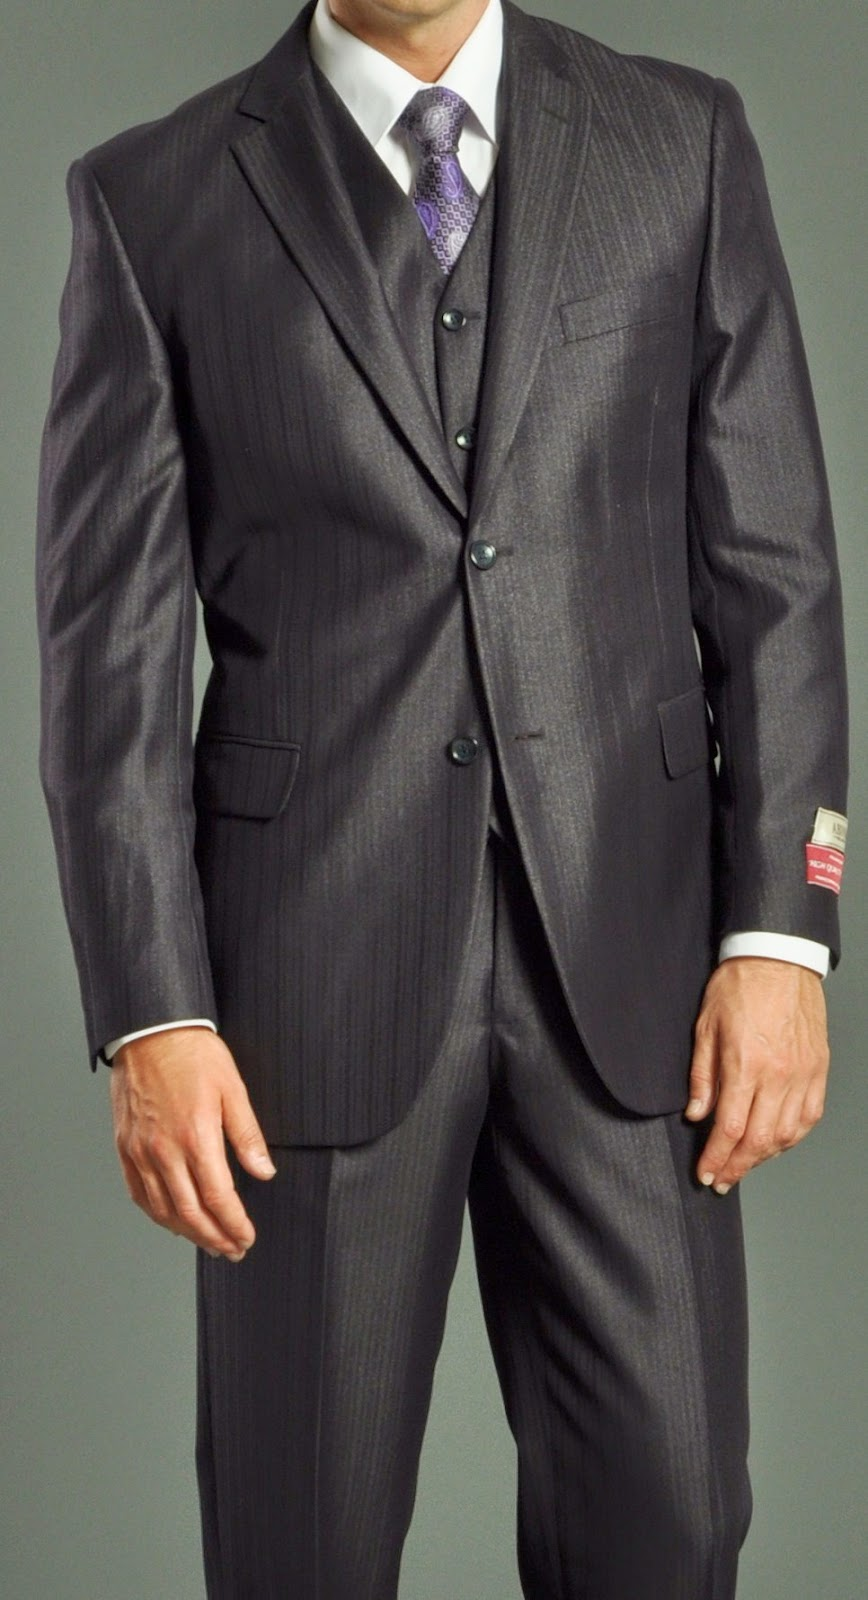 Vested Suit for Wedding